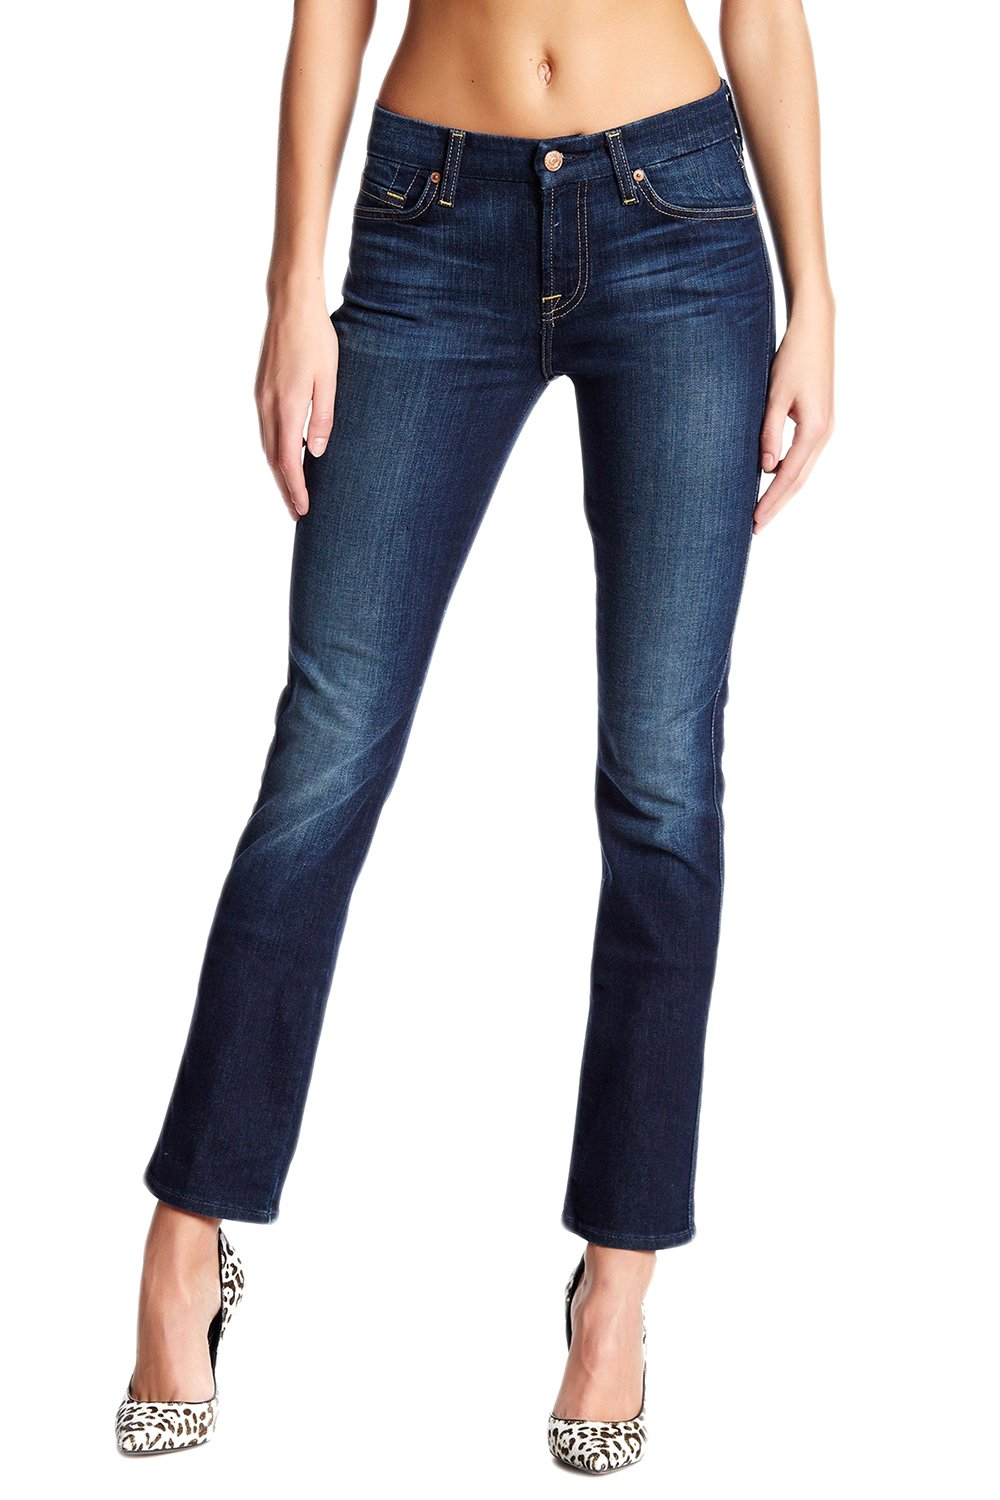 7 For All Mankind Women's Karah Form Fitted Straight Leg Jeans (Dark Blue, 26)